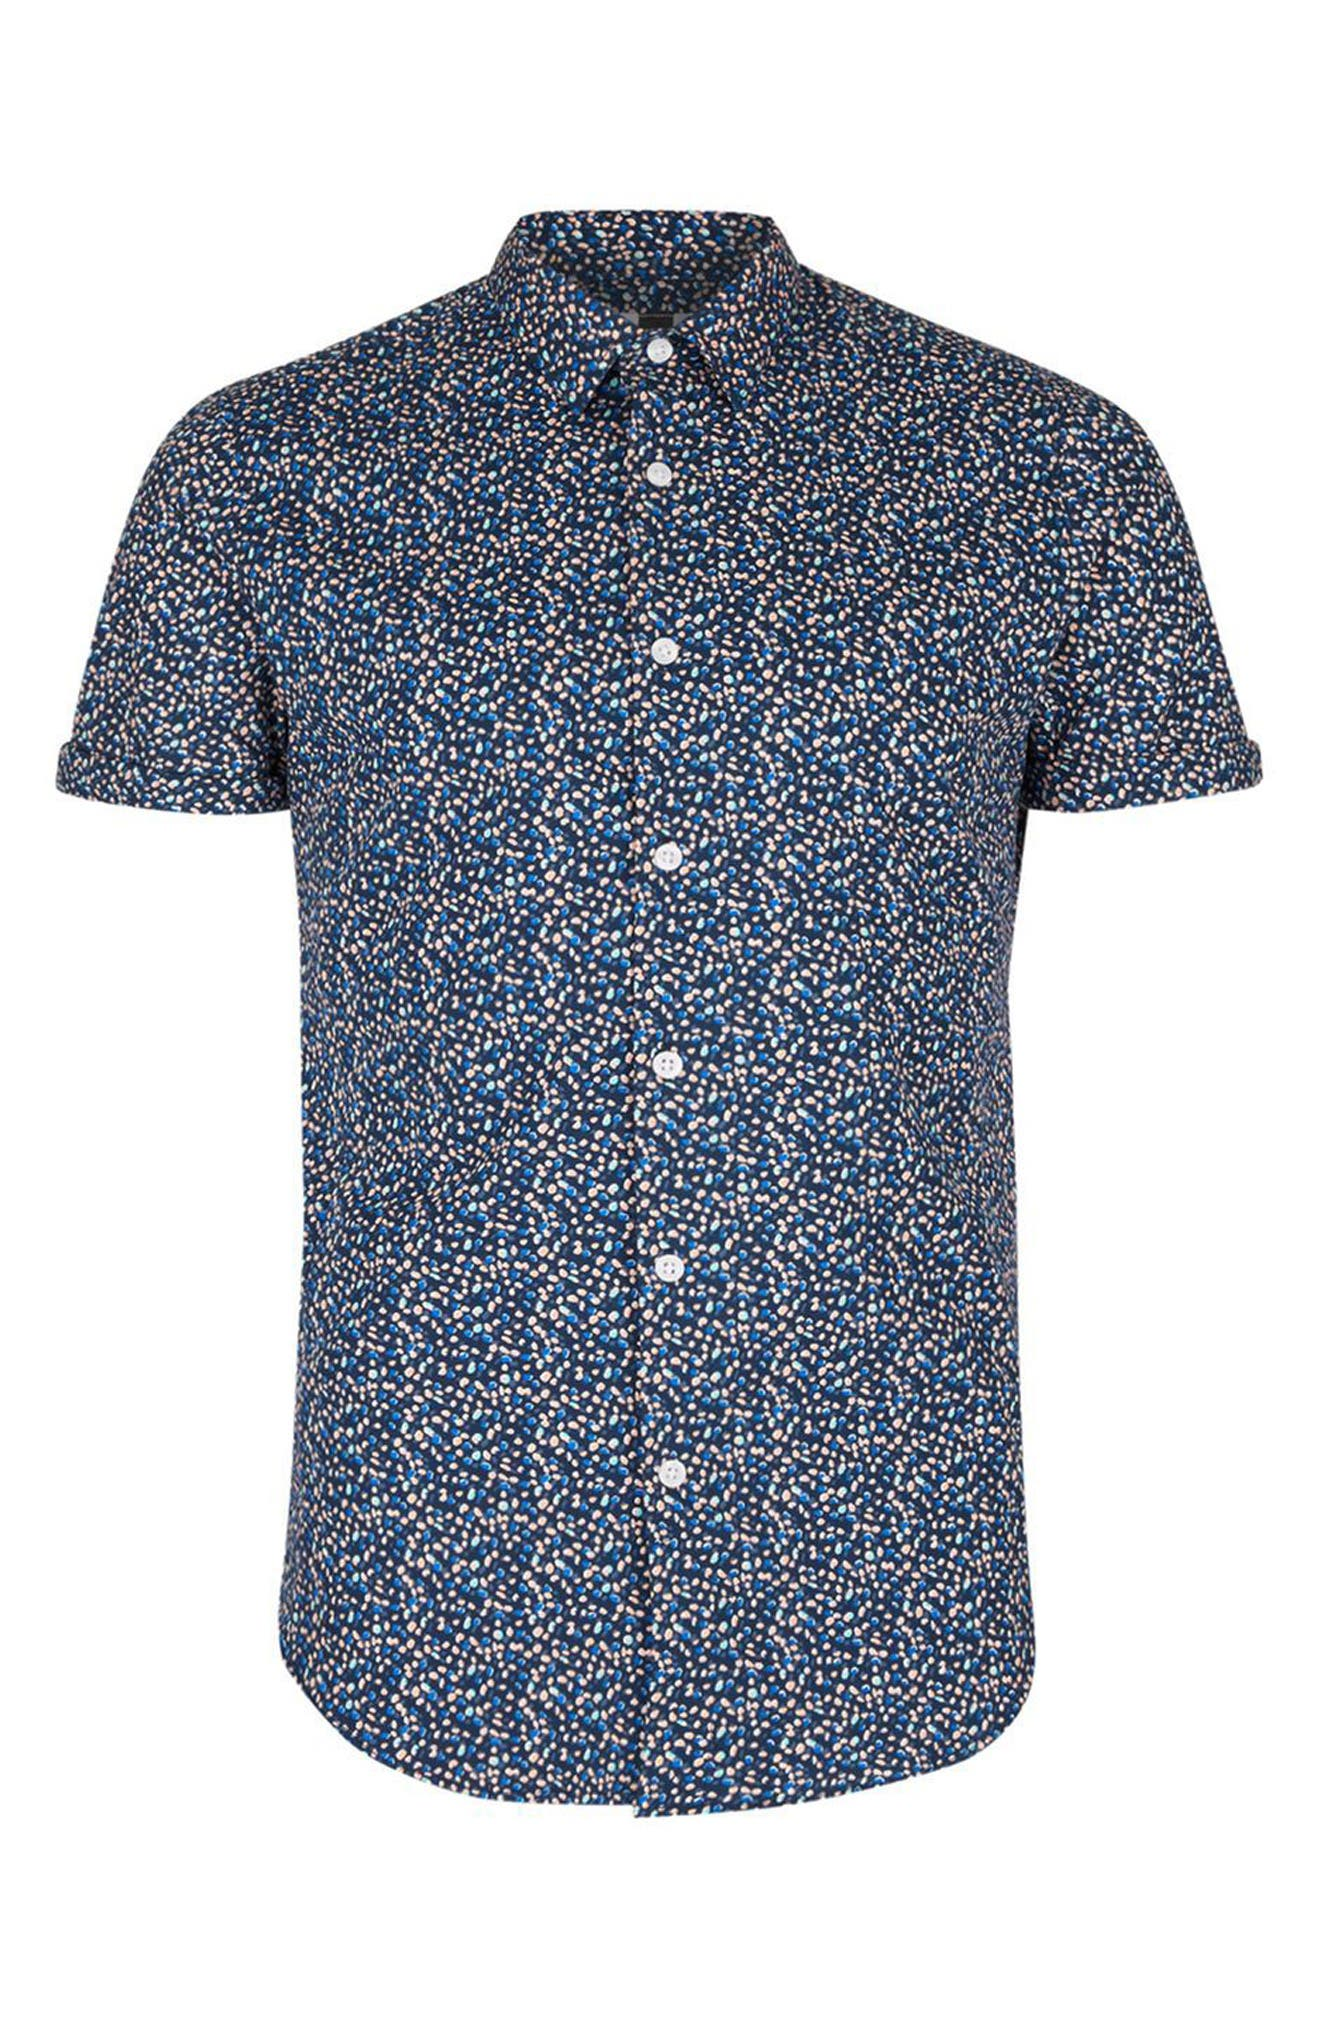 Alternate Image 5  - Topman Blotch Print Shirt